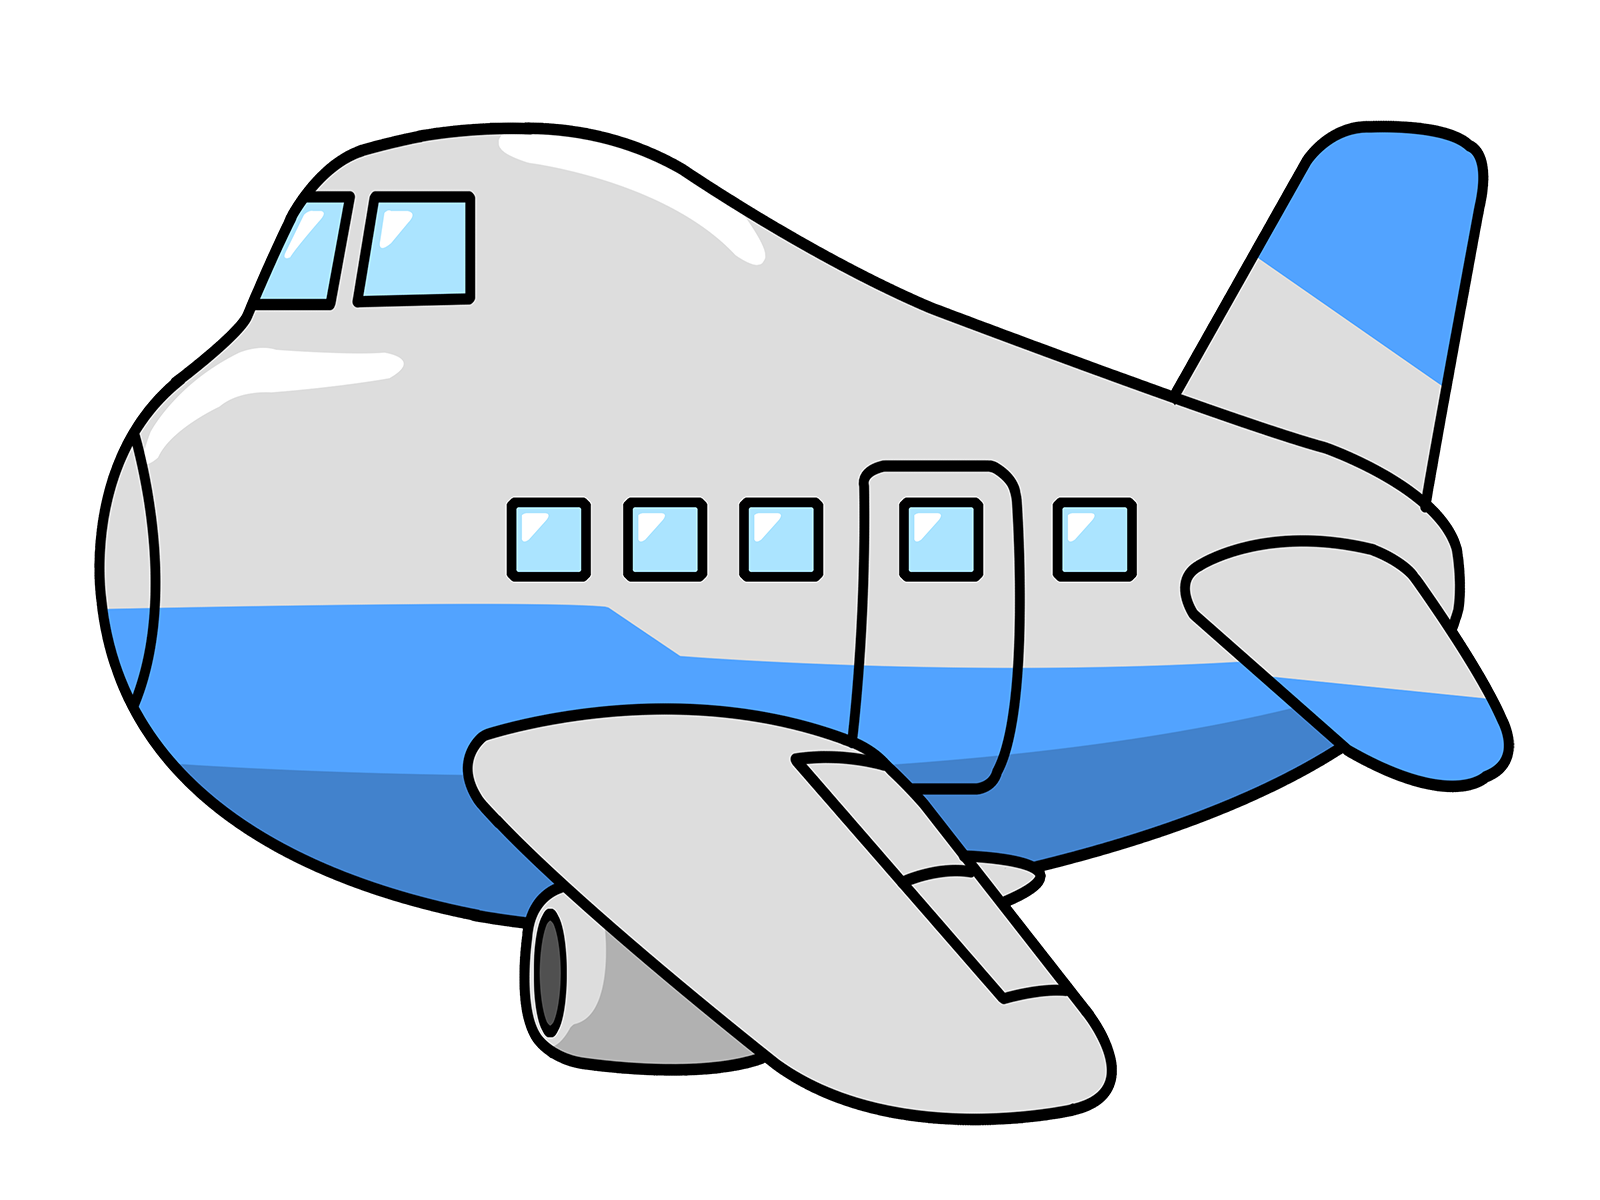 1600x1200 Cute Airplane Clipart Free Clipart Images 2